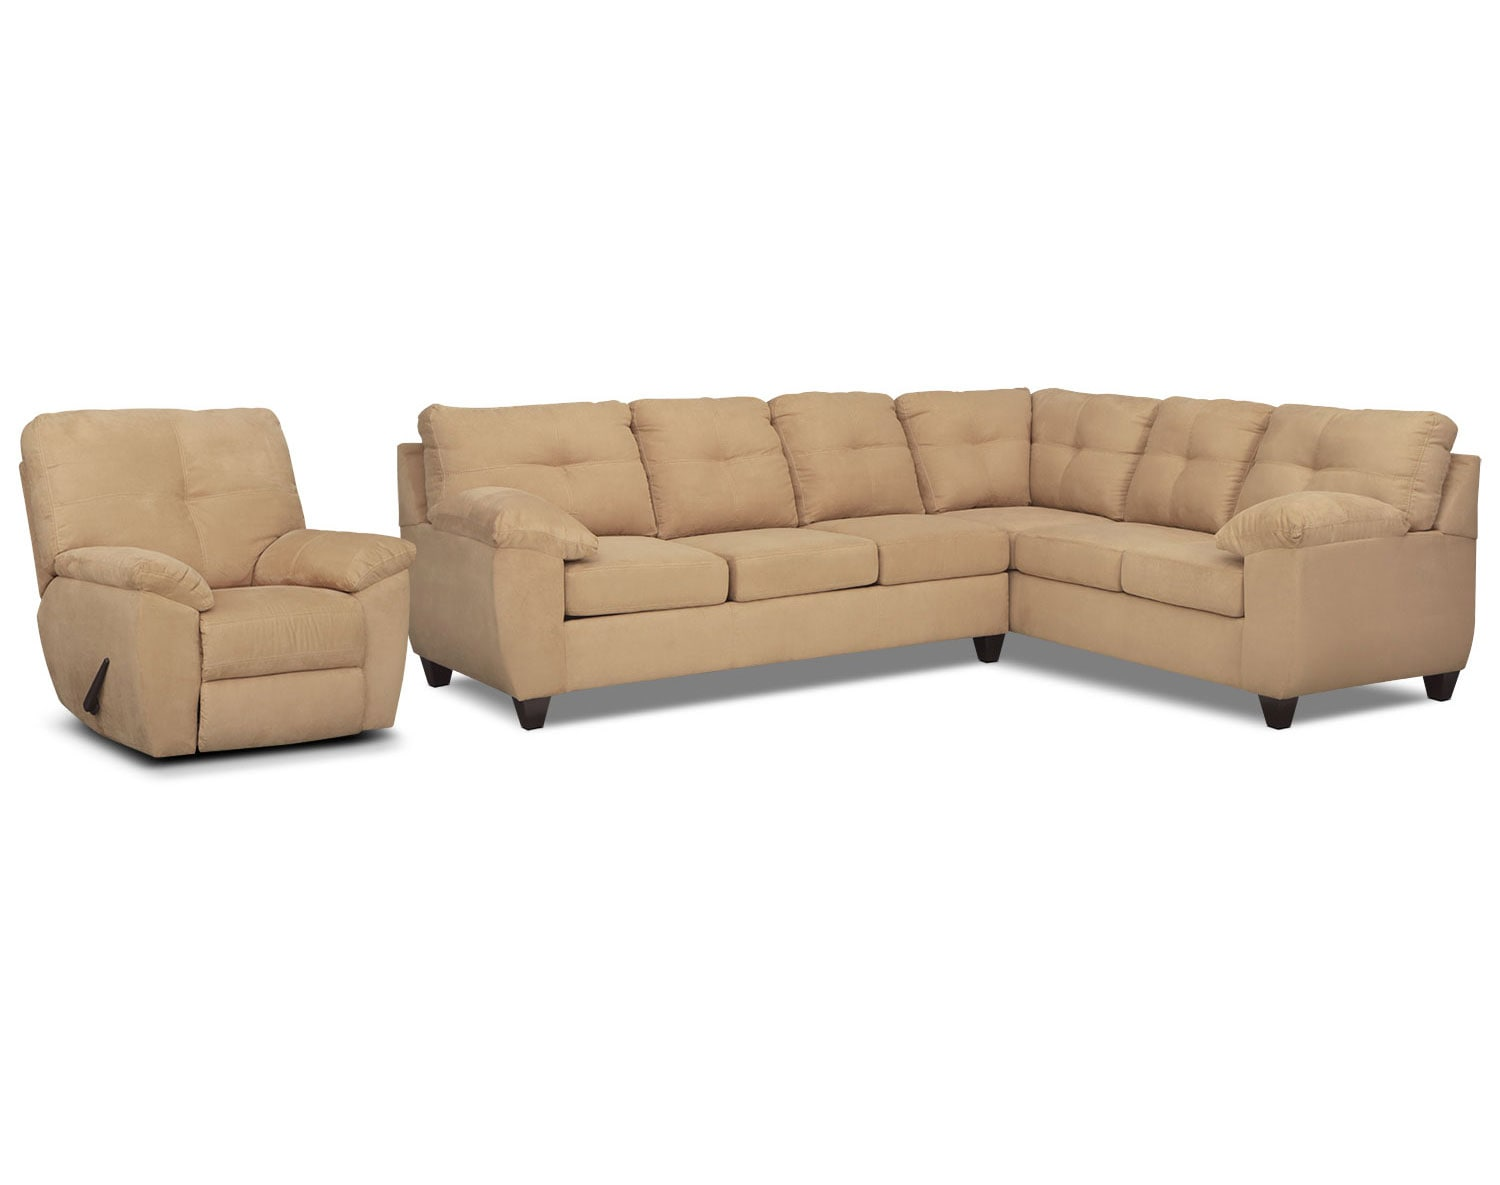 The Rialto Camel Sectional Collection